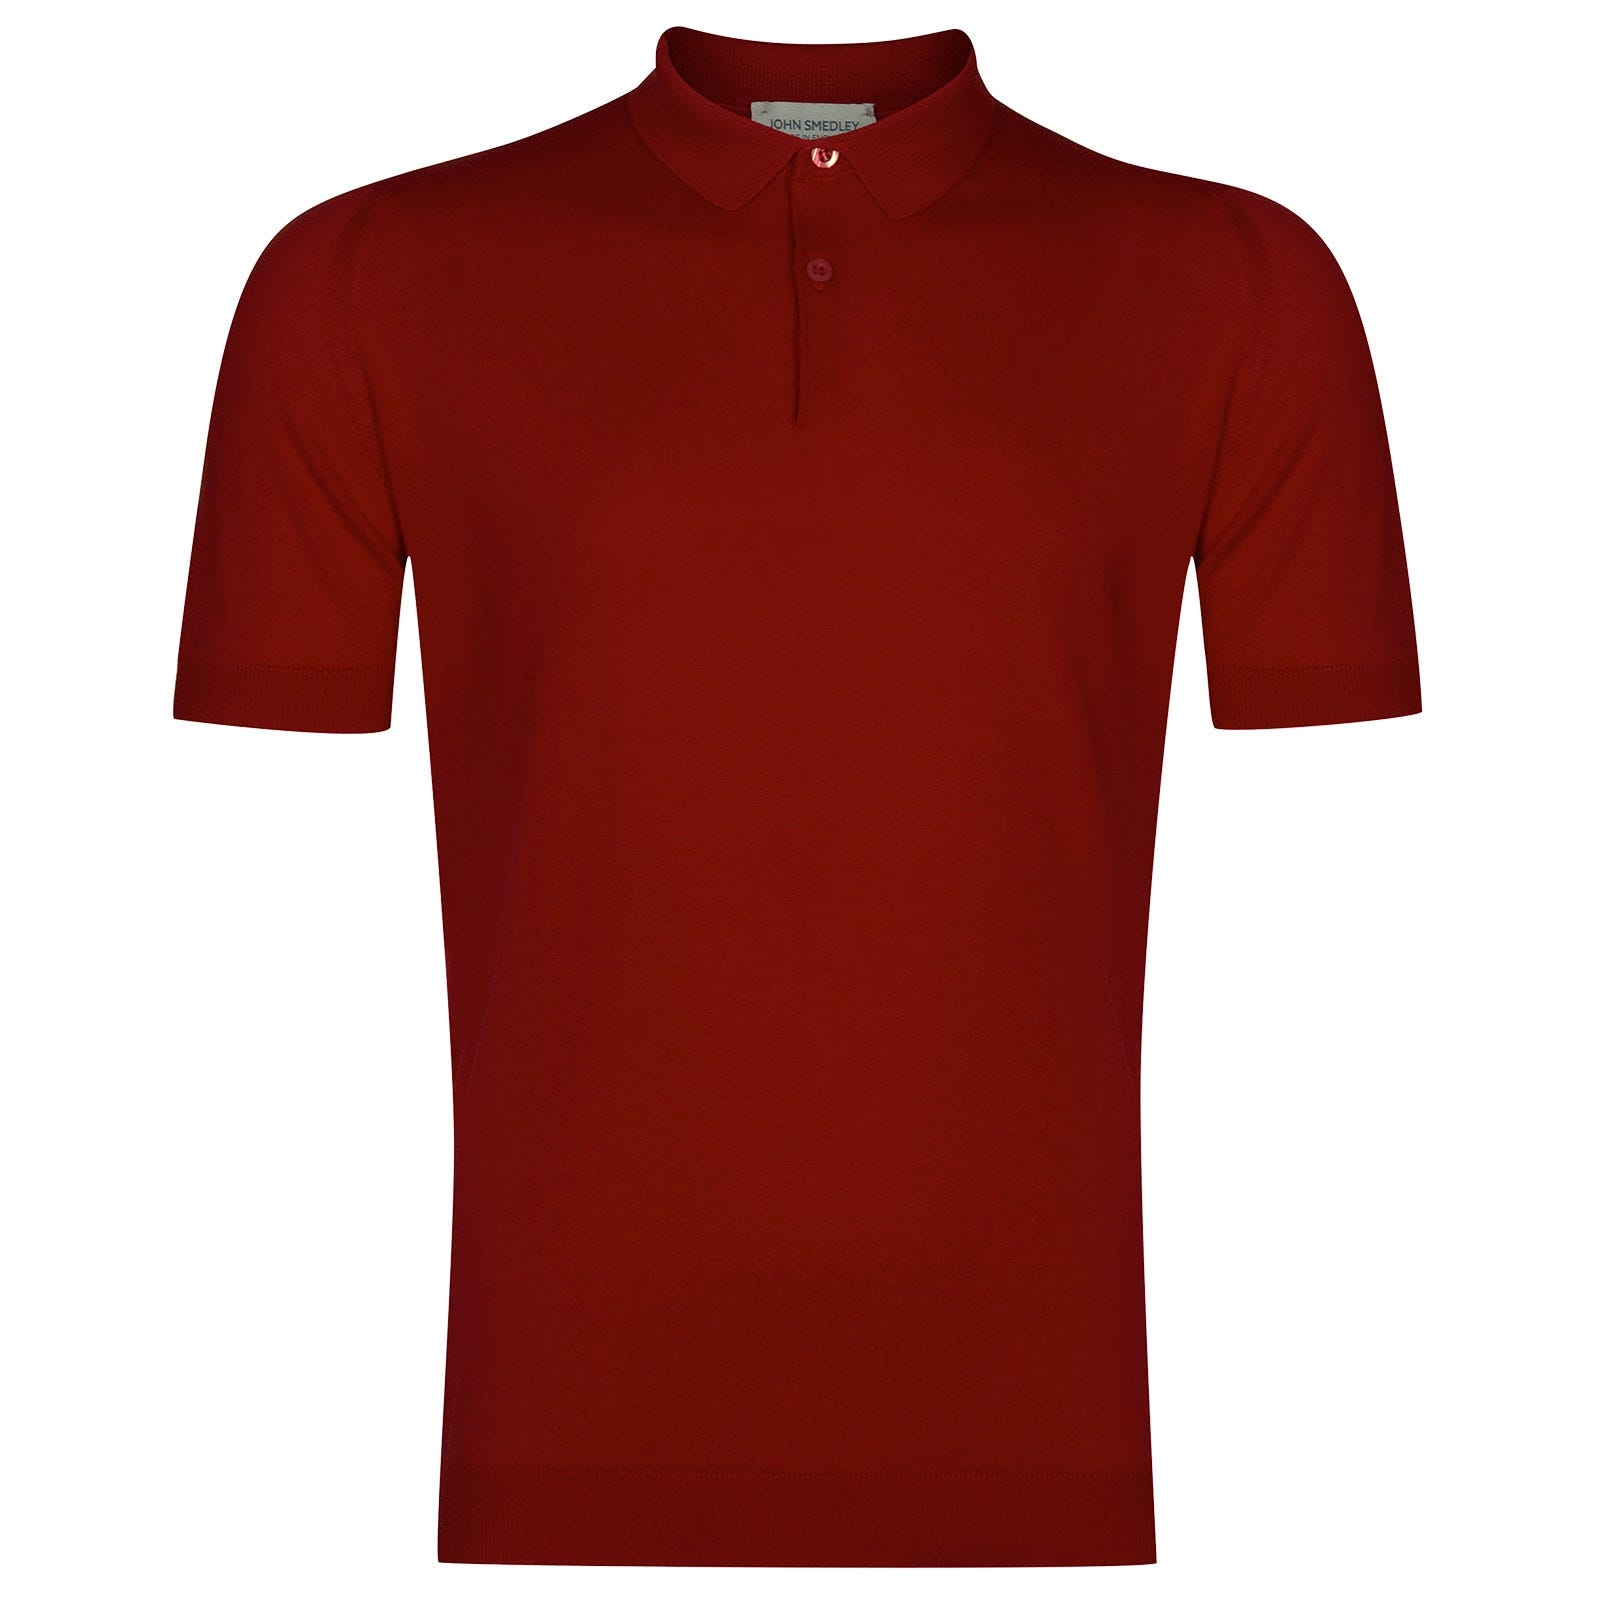 John Smedley Rhodes Sea Island Cotton Shirt in Thermal Red-XXL